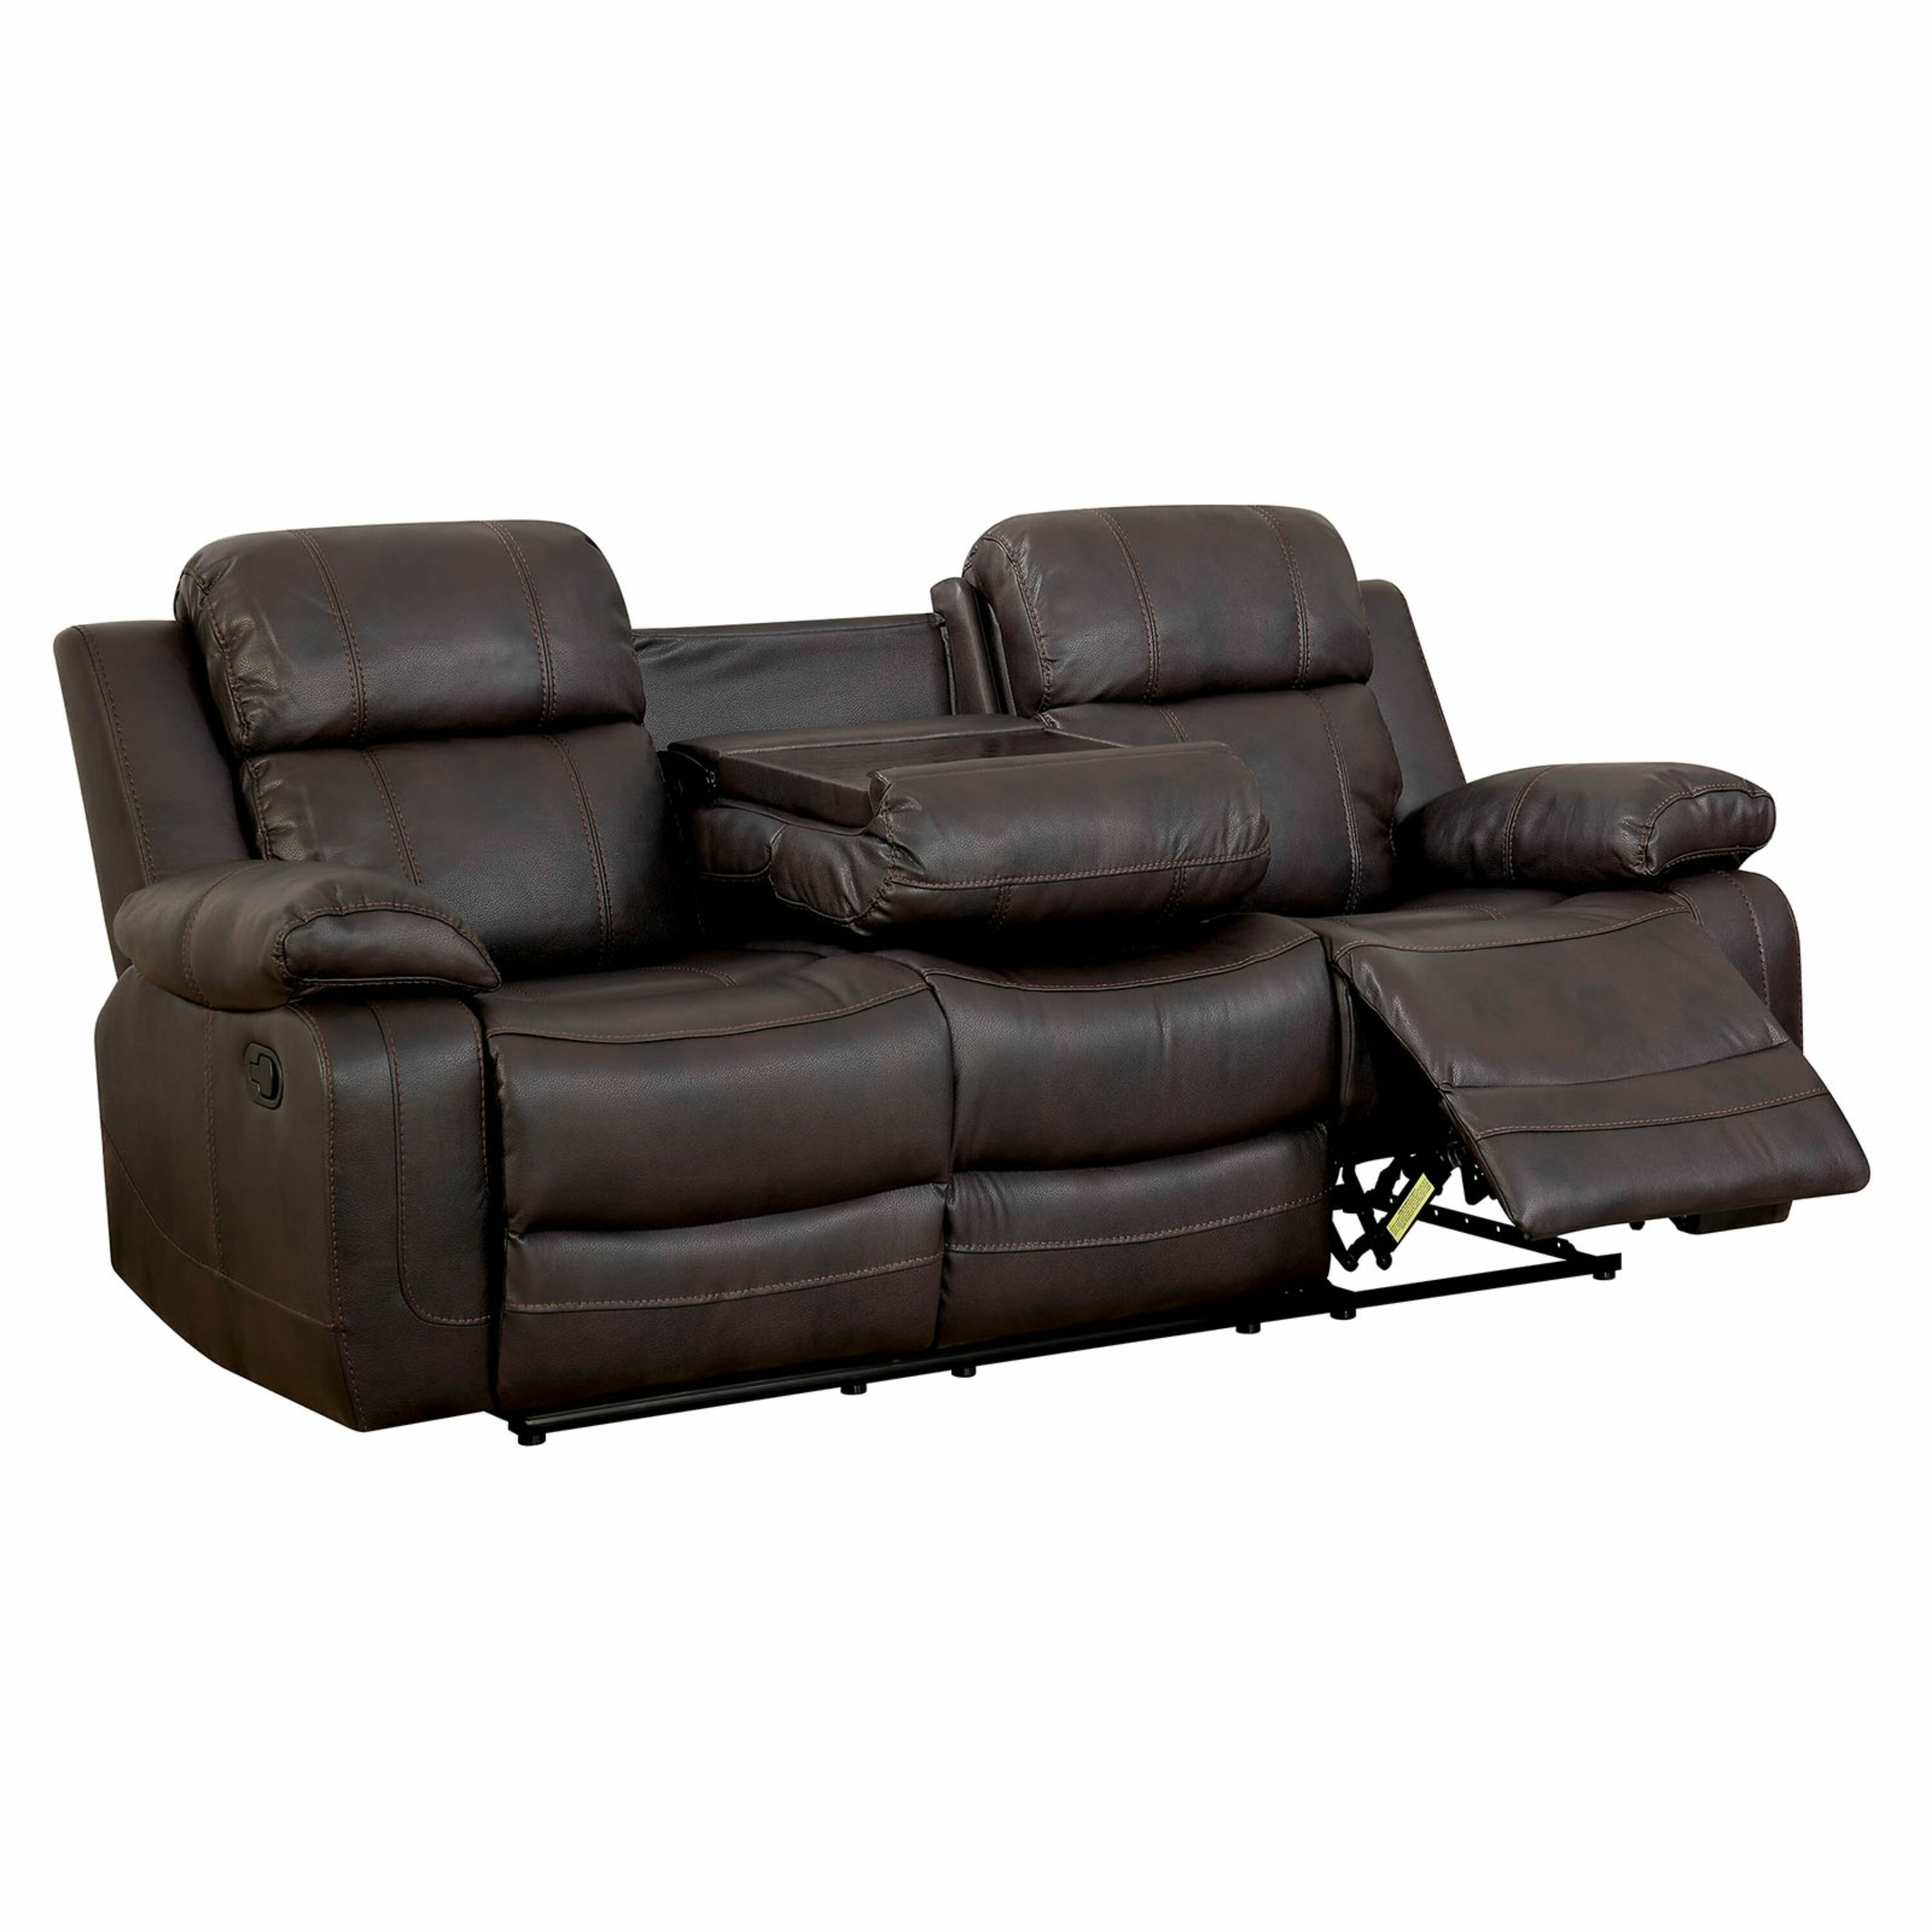 Red Barrel Studio Helfrich 85 Genuine Leather Pillow Top Arm Reclining Sofa Reviews Wayfair